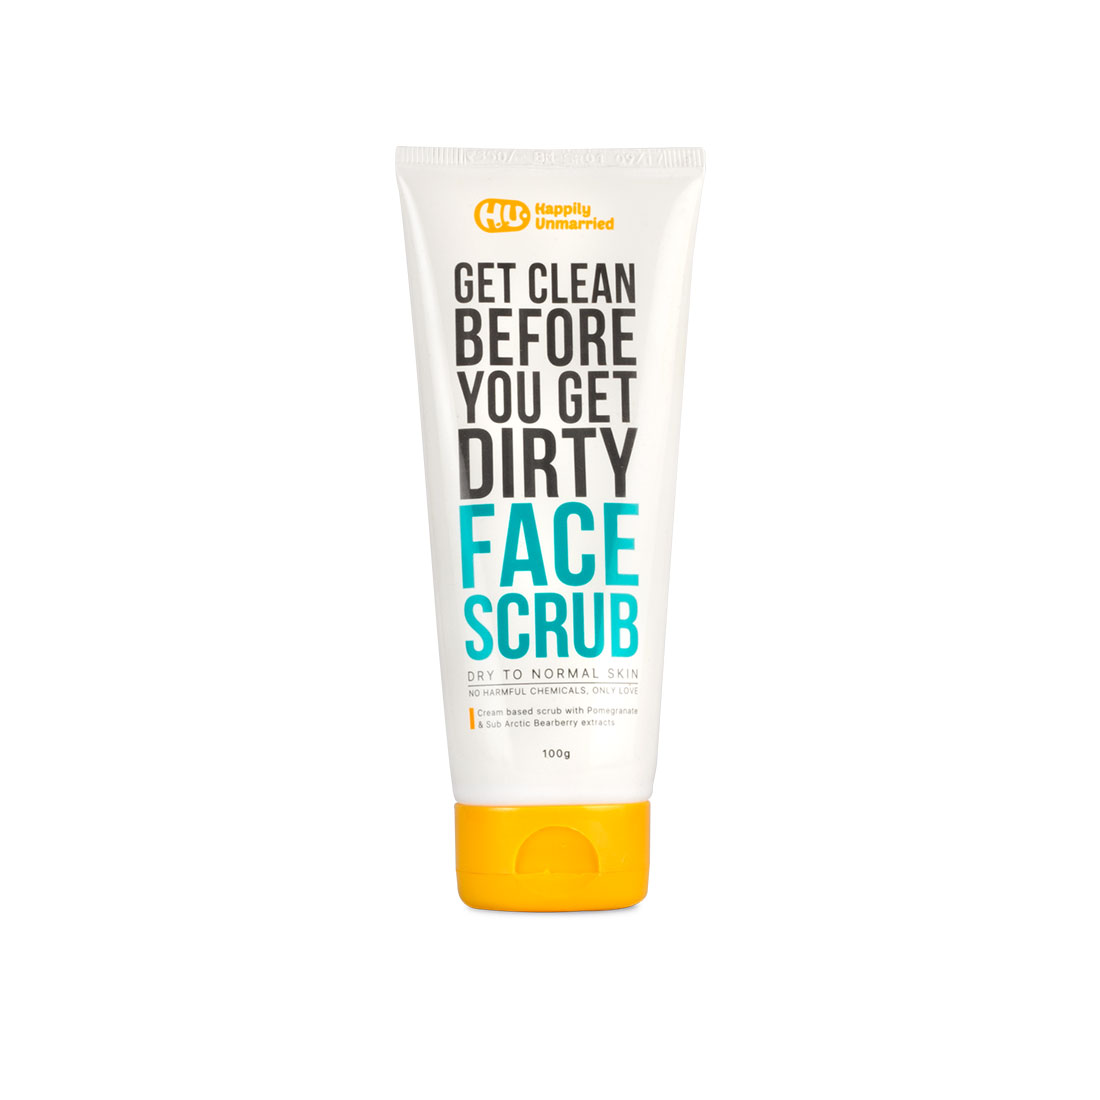 Face Scrub - Dry to Normal Skin - 100g